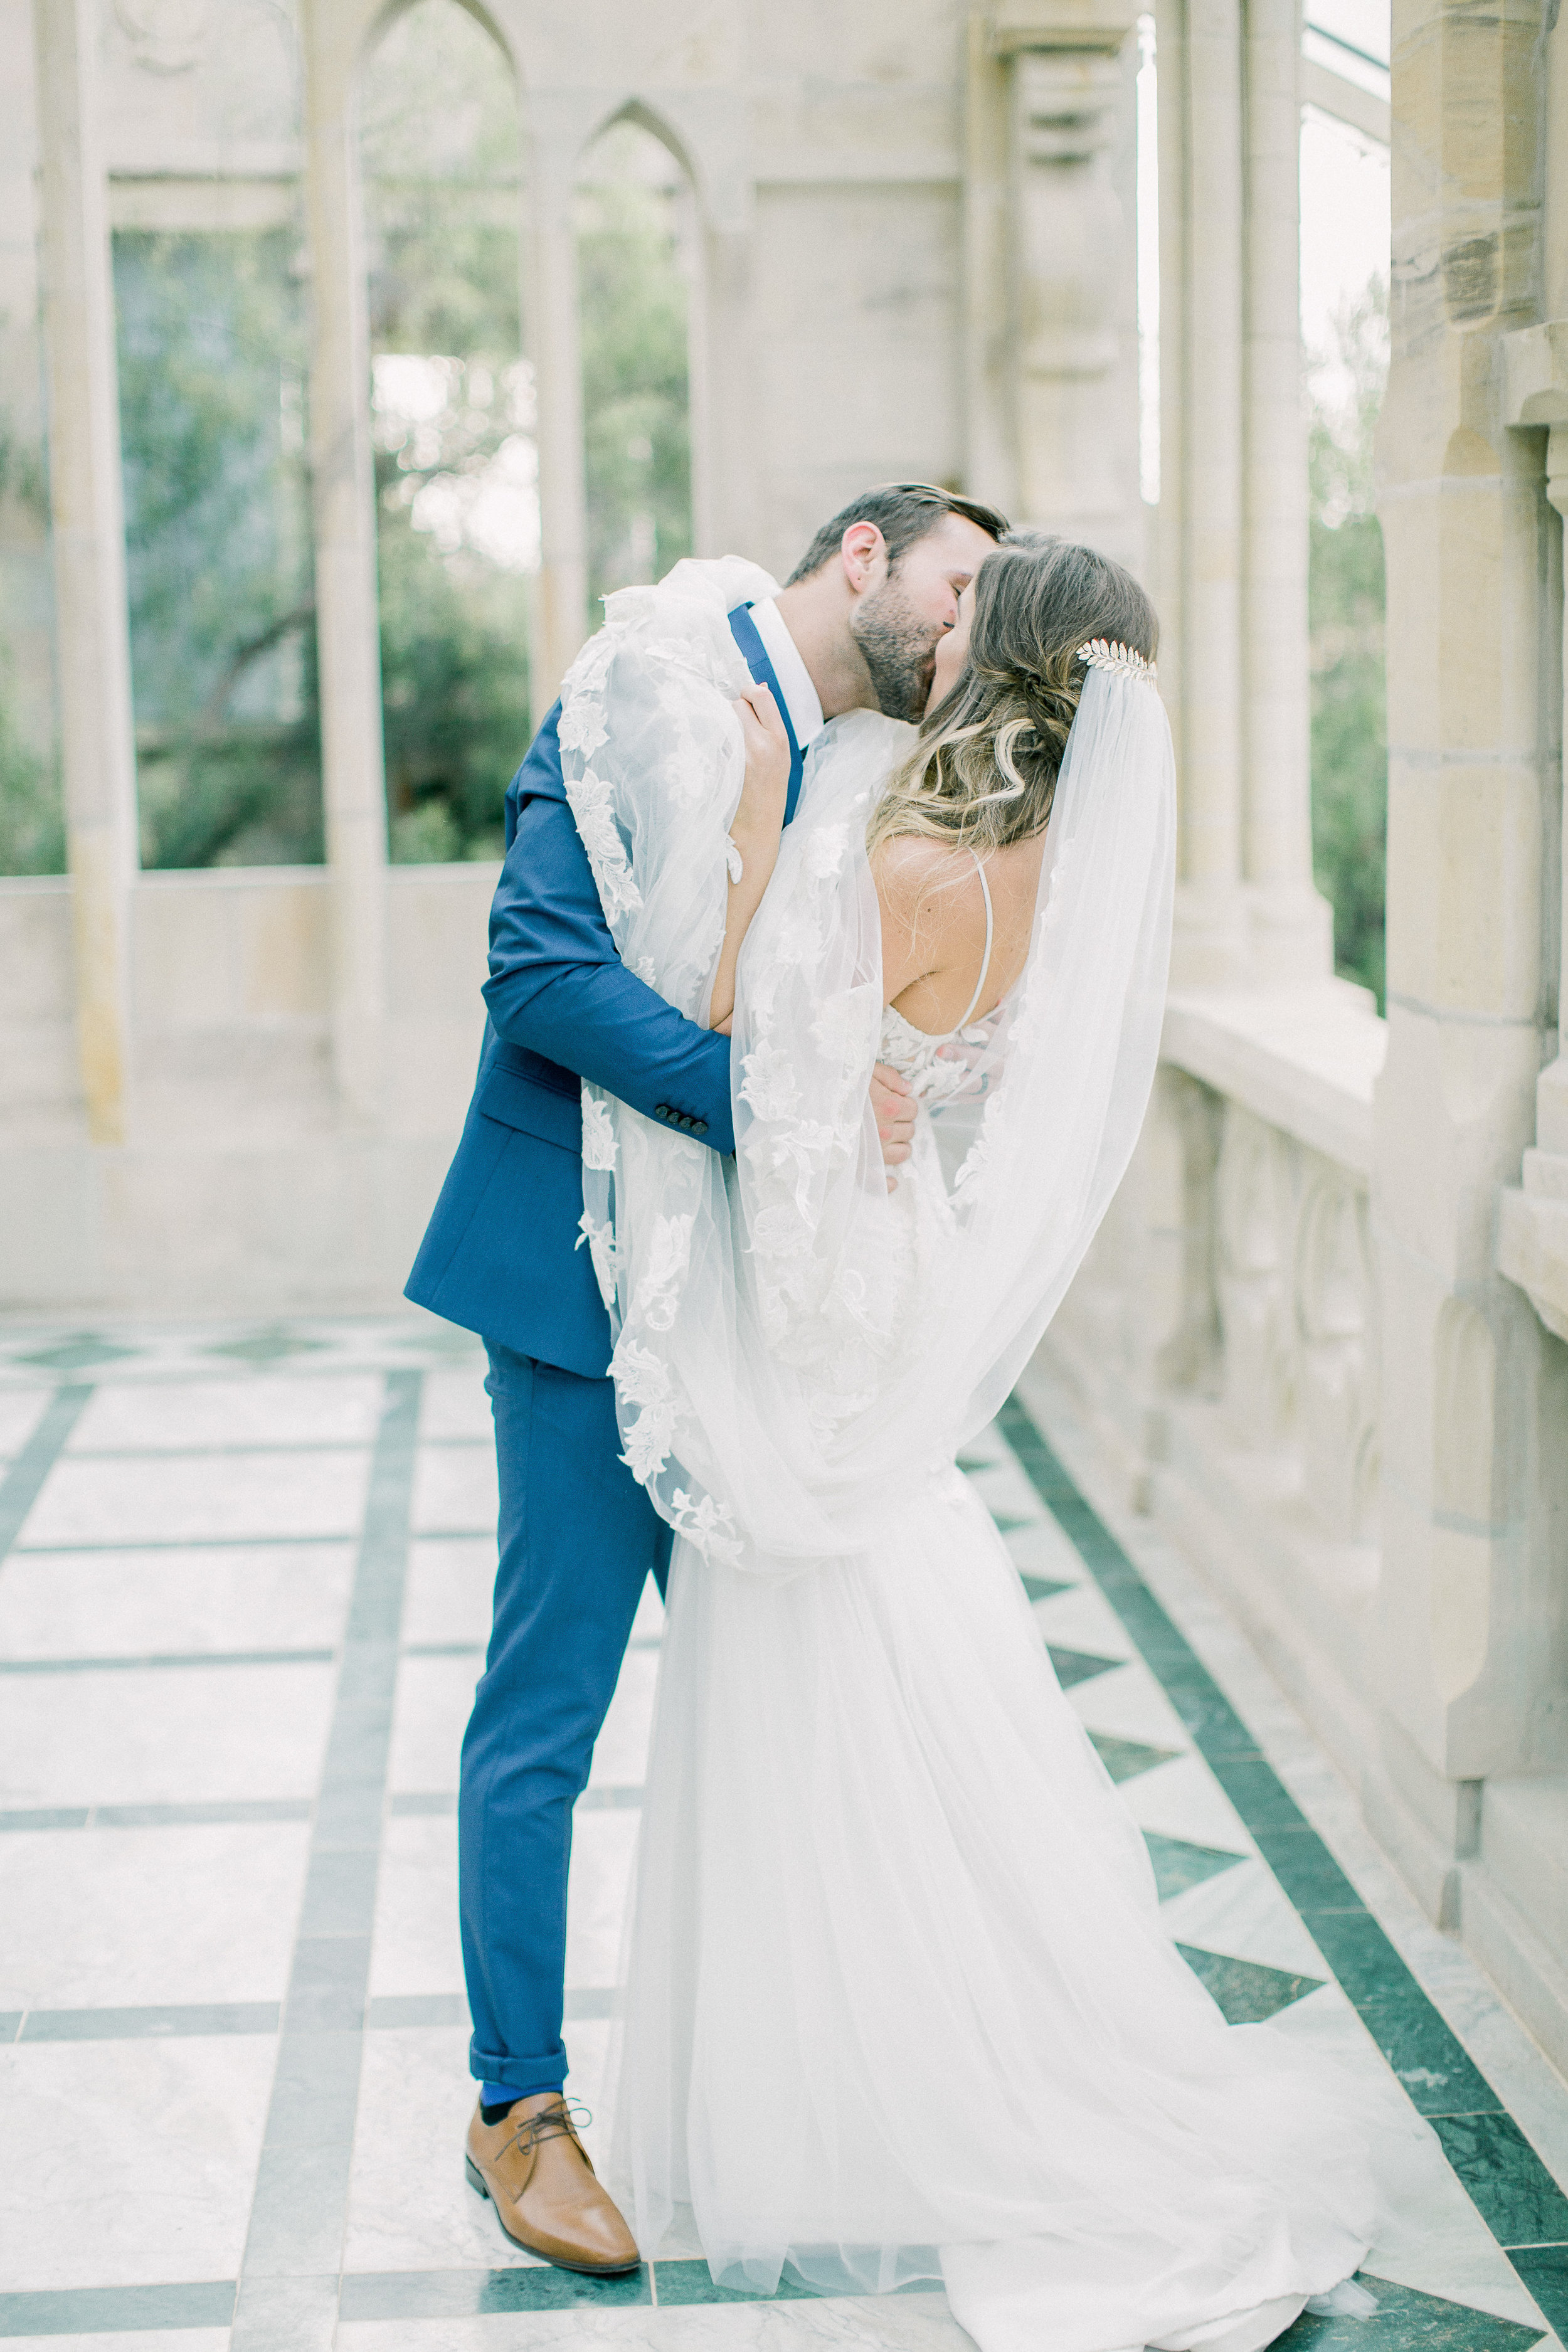 South africa wedding photographer clareece smit photography12.jpg